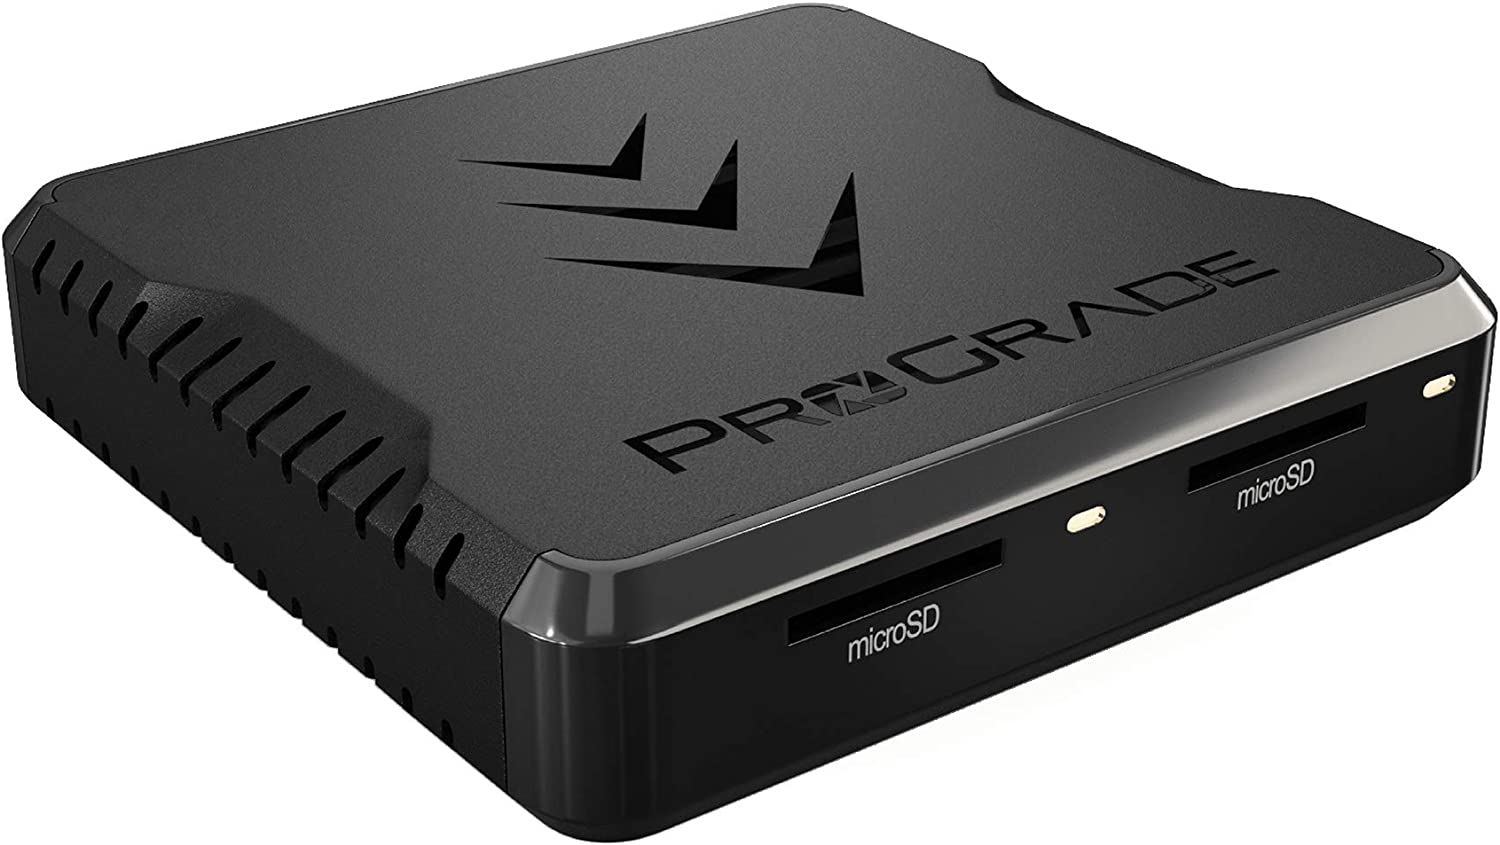 ProGrade Digital microSD UHS-II Dual-Slot Memory Card Reader   USB 3.2 Gen 2 for Professional Filmmakers, Photographers & Content Creators NOT A Full-Size SD Reader IT is MICROSD